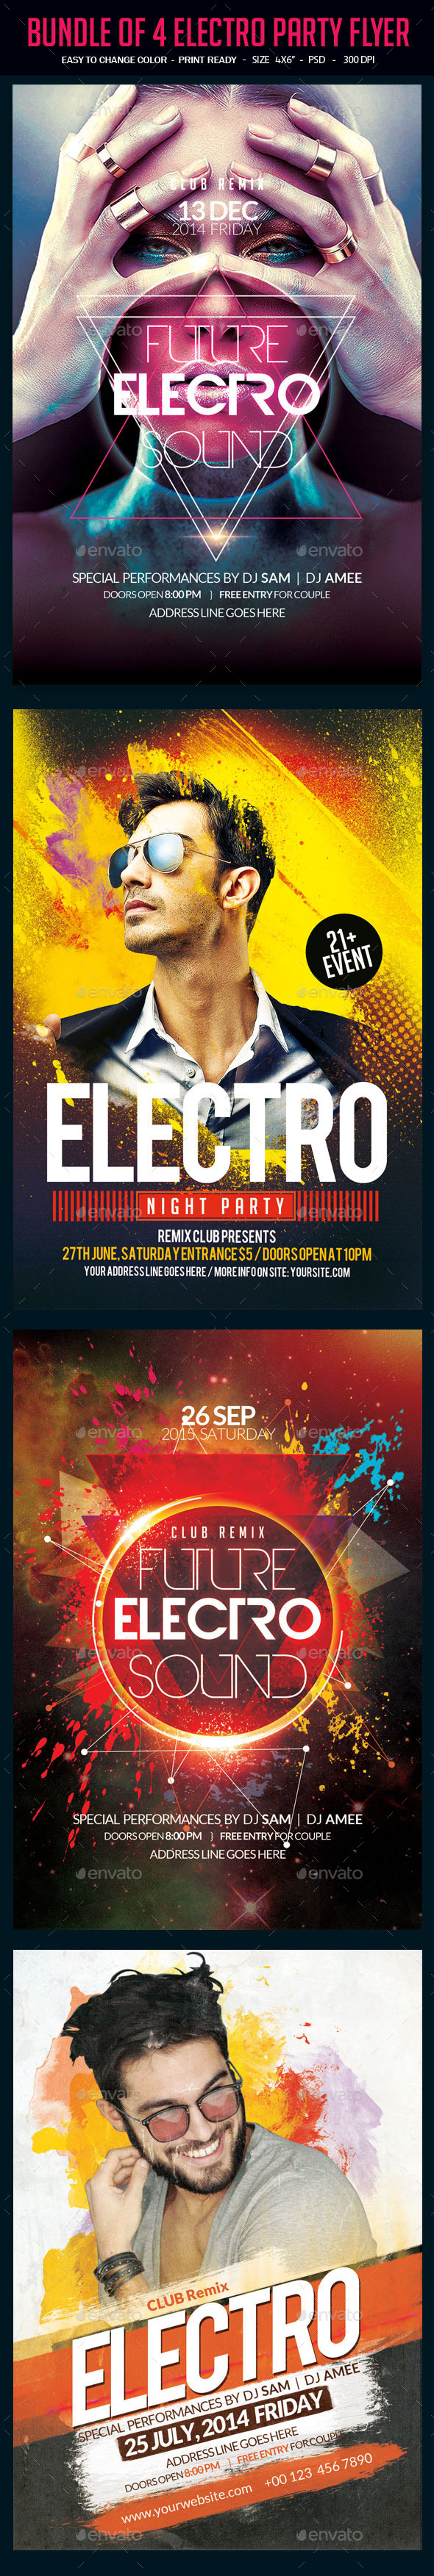 Bundle of 4 Electro Party Flyer - Clubs & Parties Events